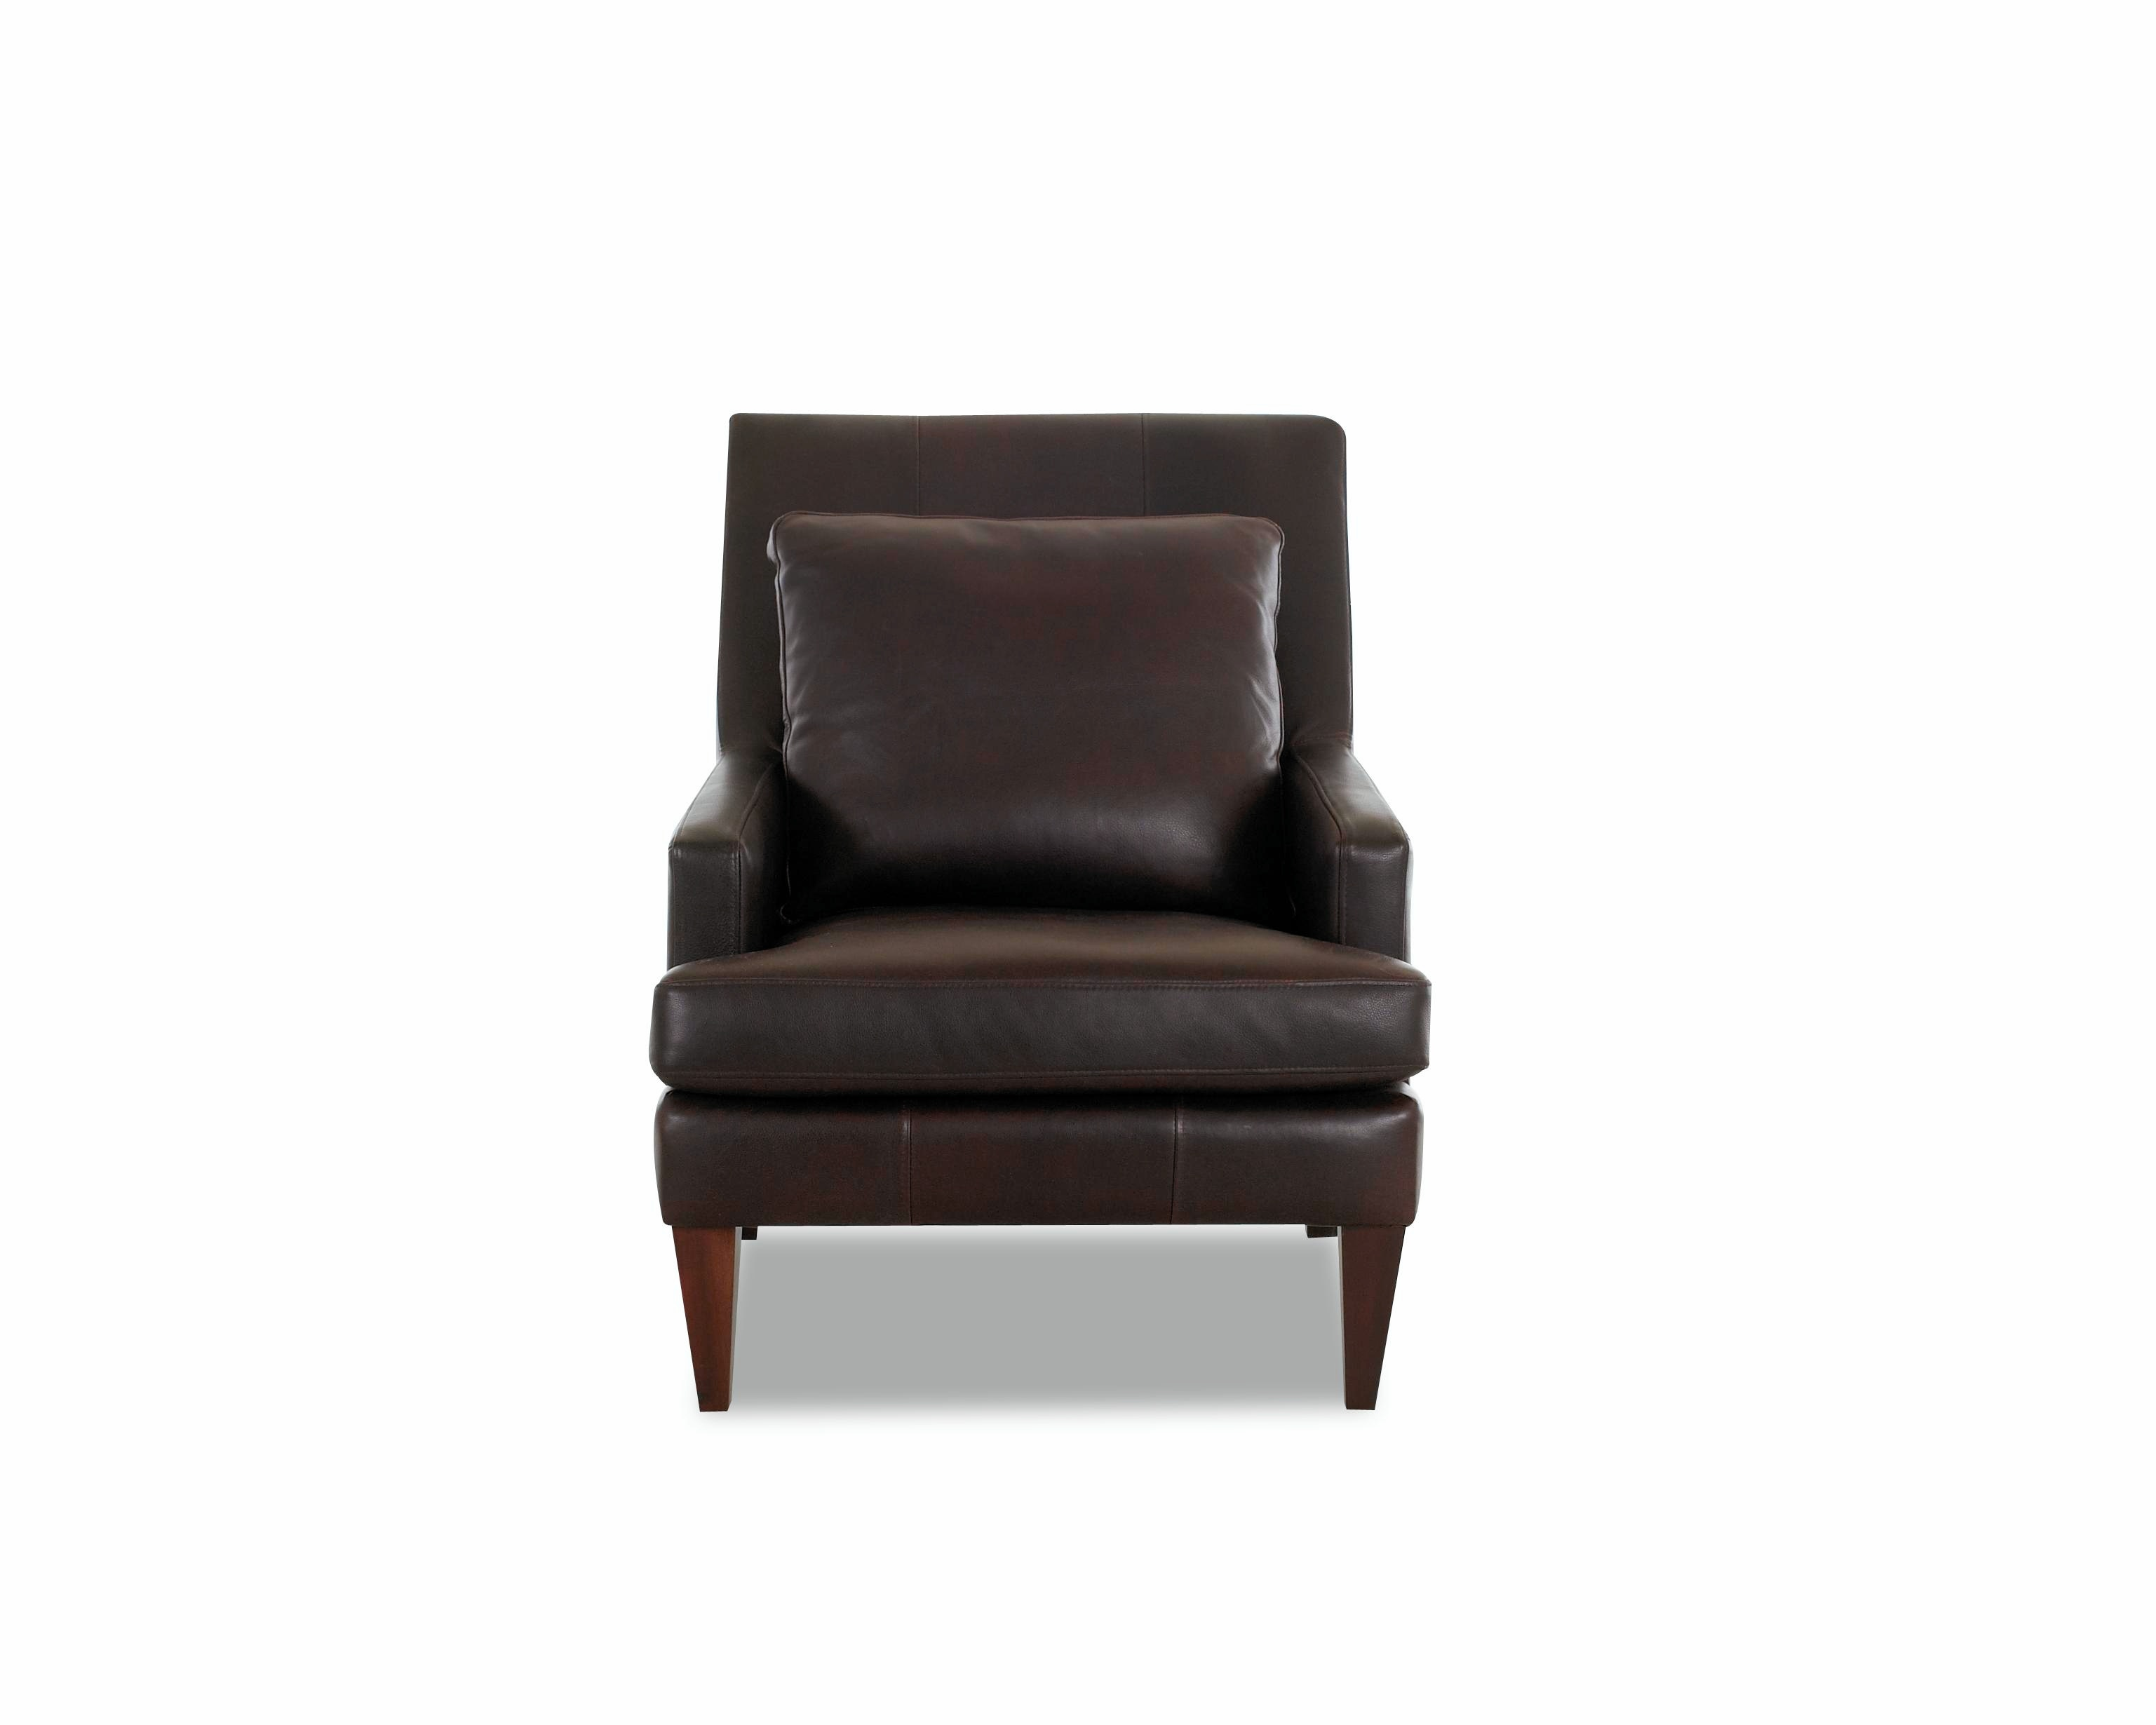 Klaussner Living Room Townsend LD11000 C - Hanks Fine Furniture - Bentonville, AR, Conway, AR ...